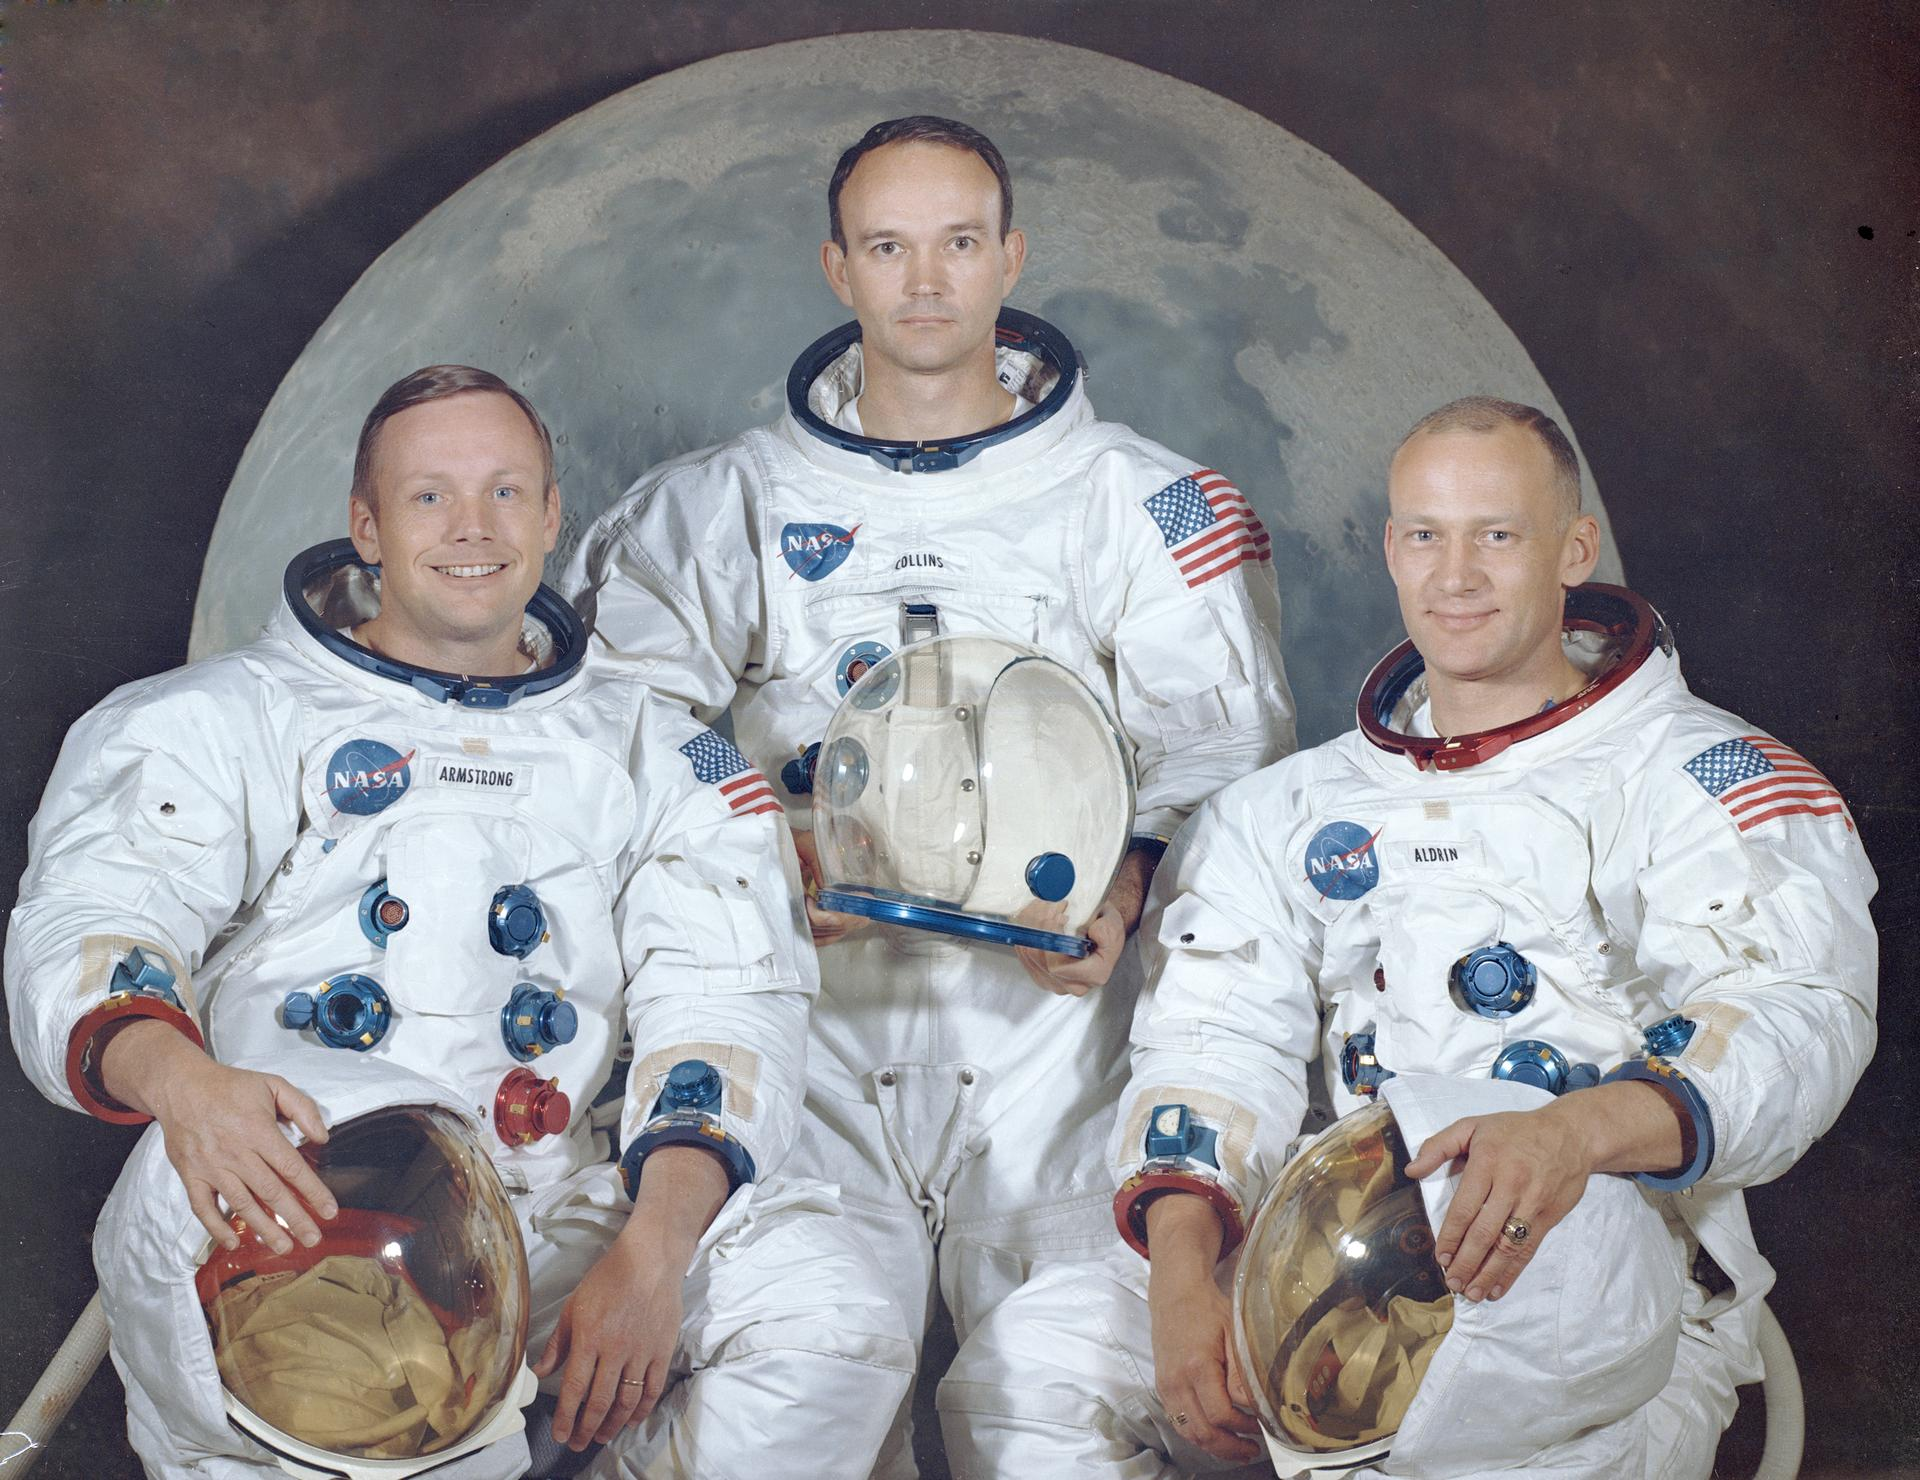 apollo 11 crew photo NASA